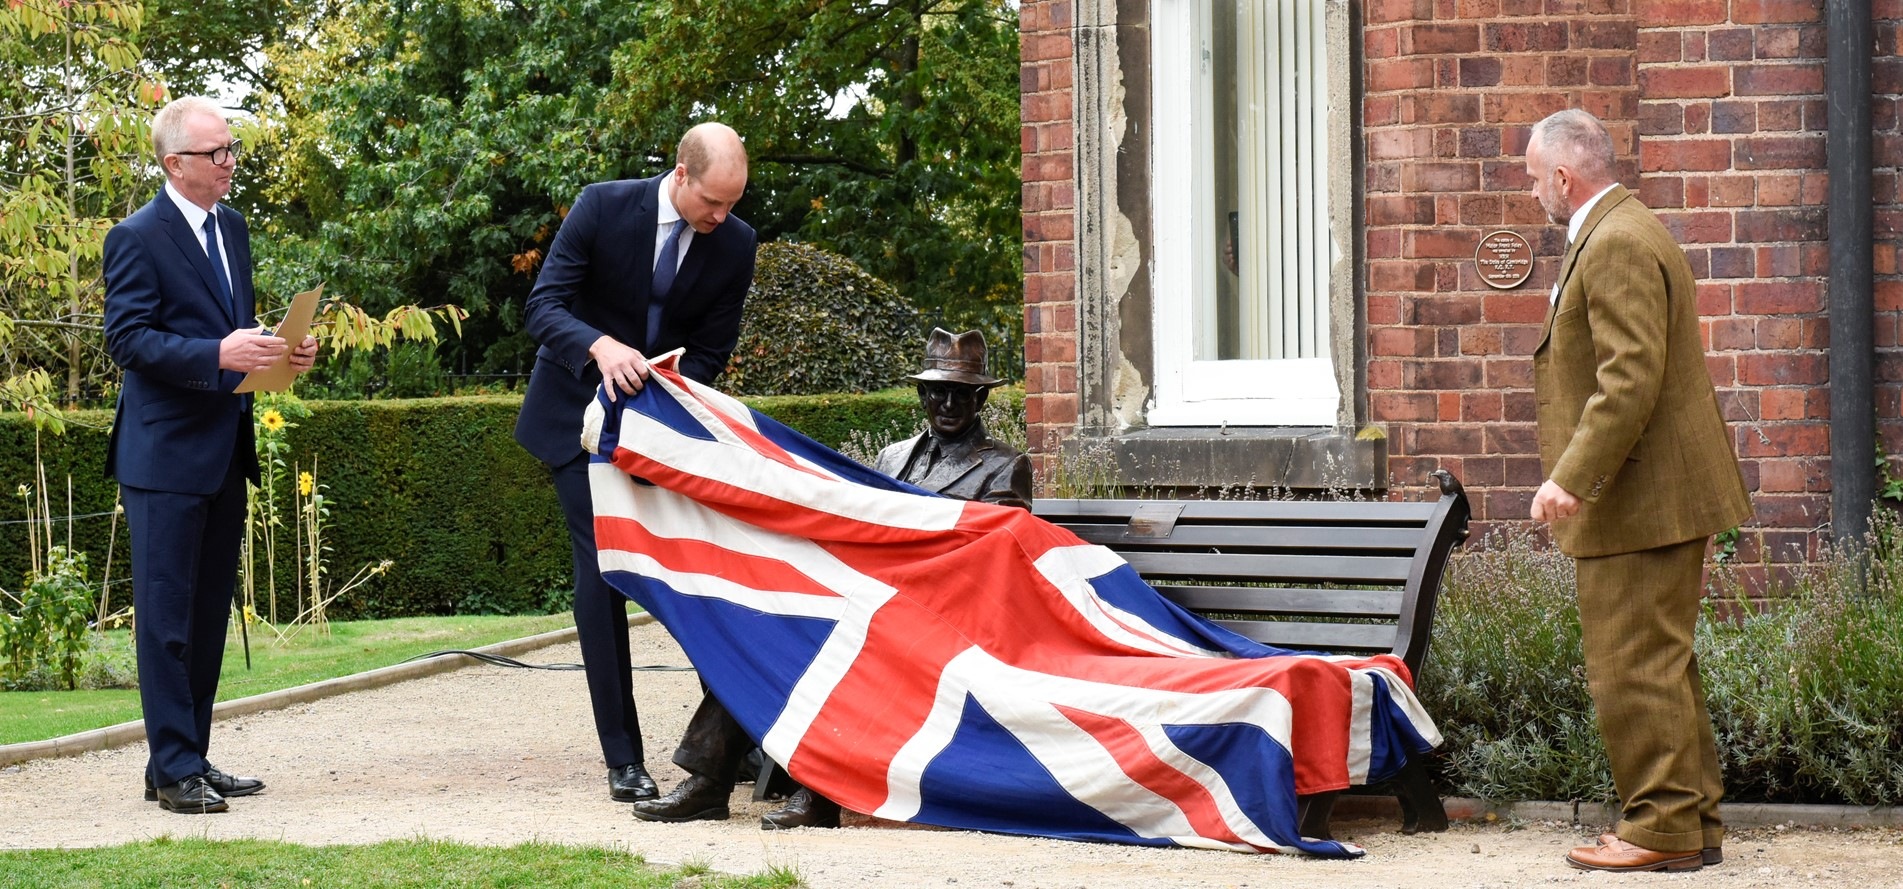 Ian Austin MP and statue designer Andy de Comyn watch Prince William unveil the statue of Frank Foley.jpg